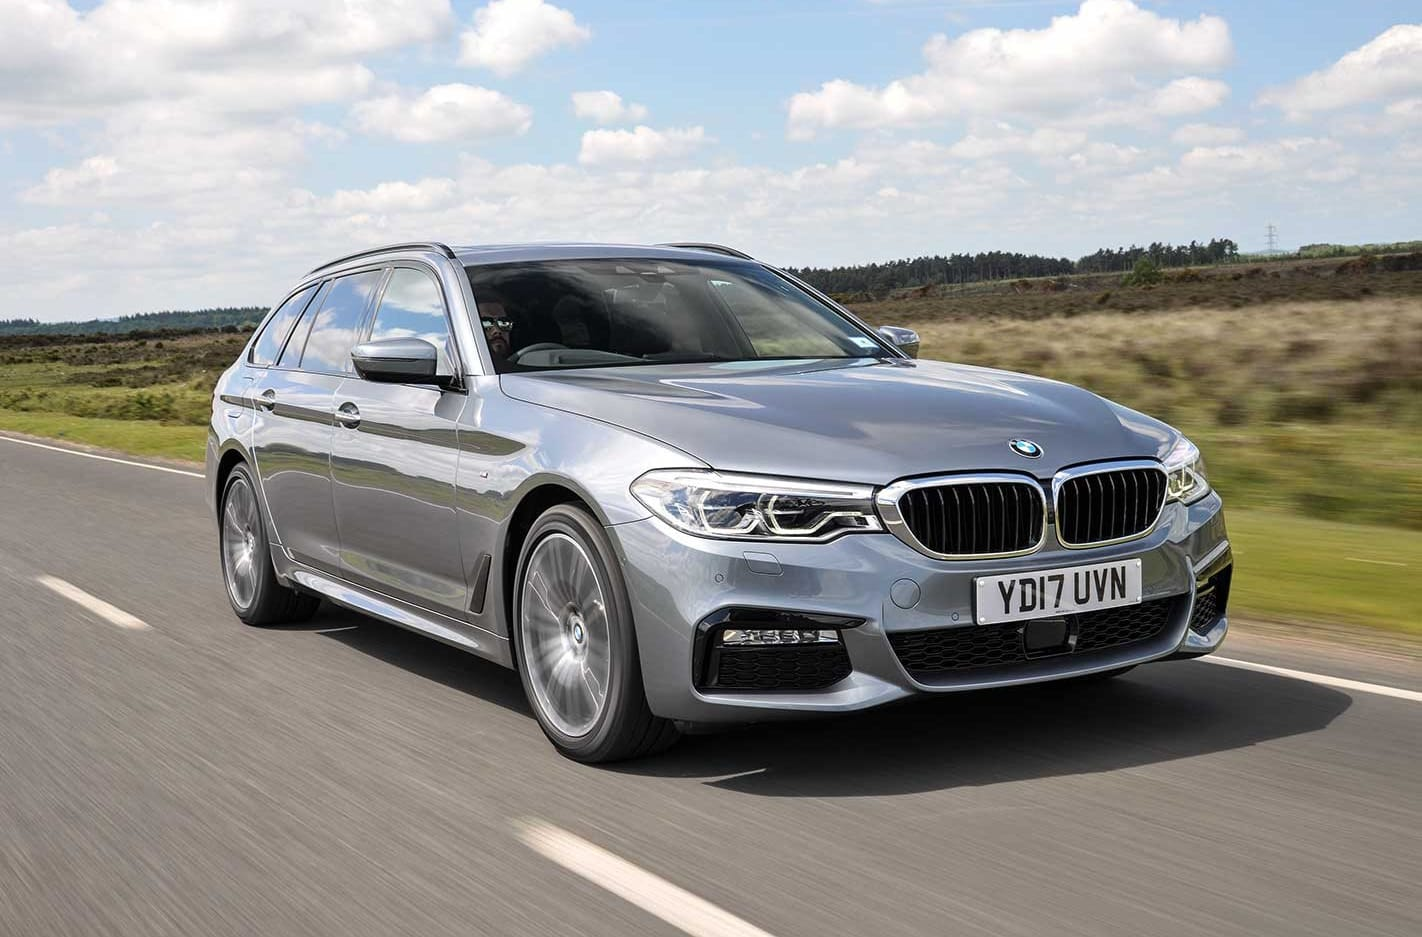 2018 BMW 530i Touring performance review